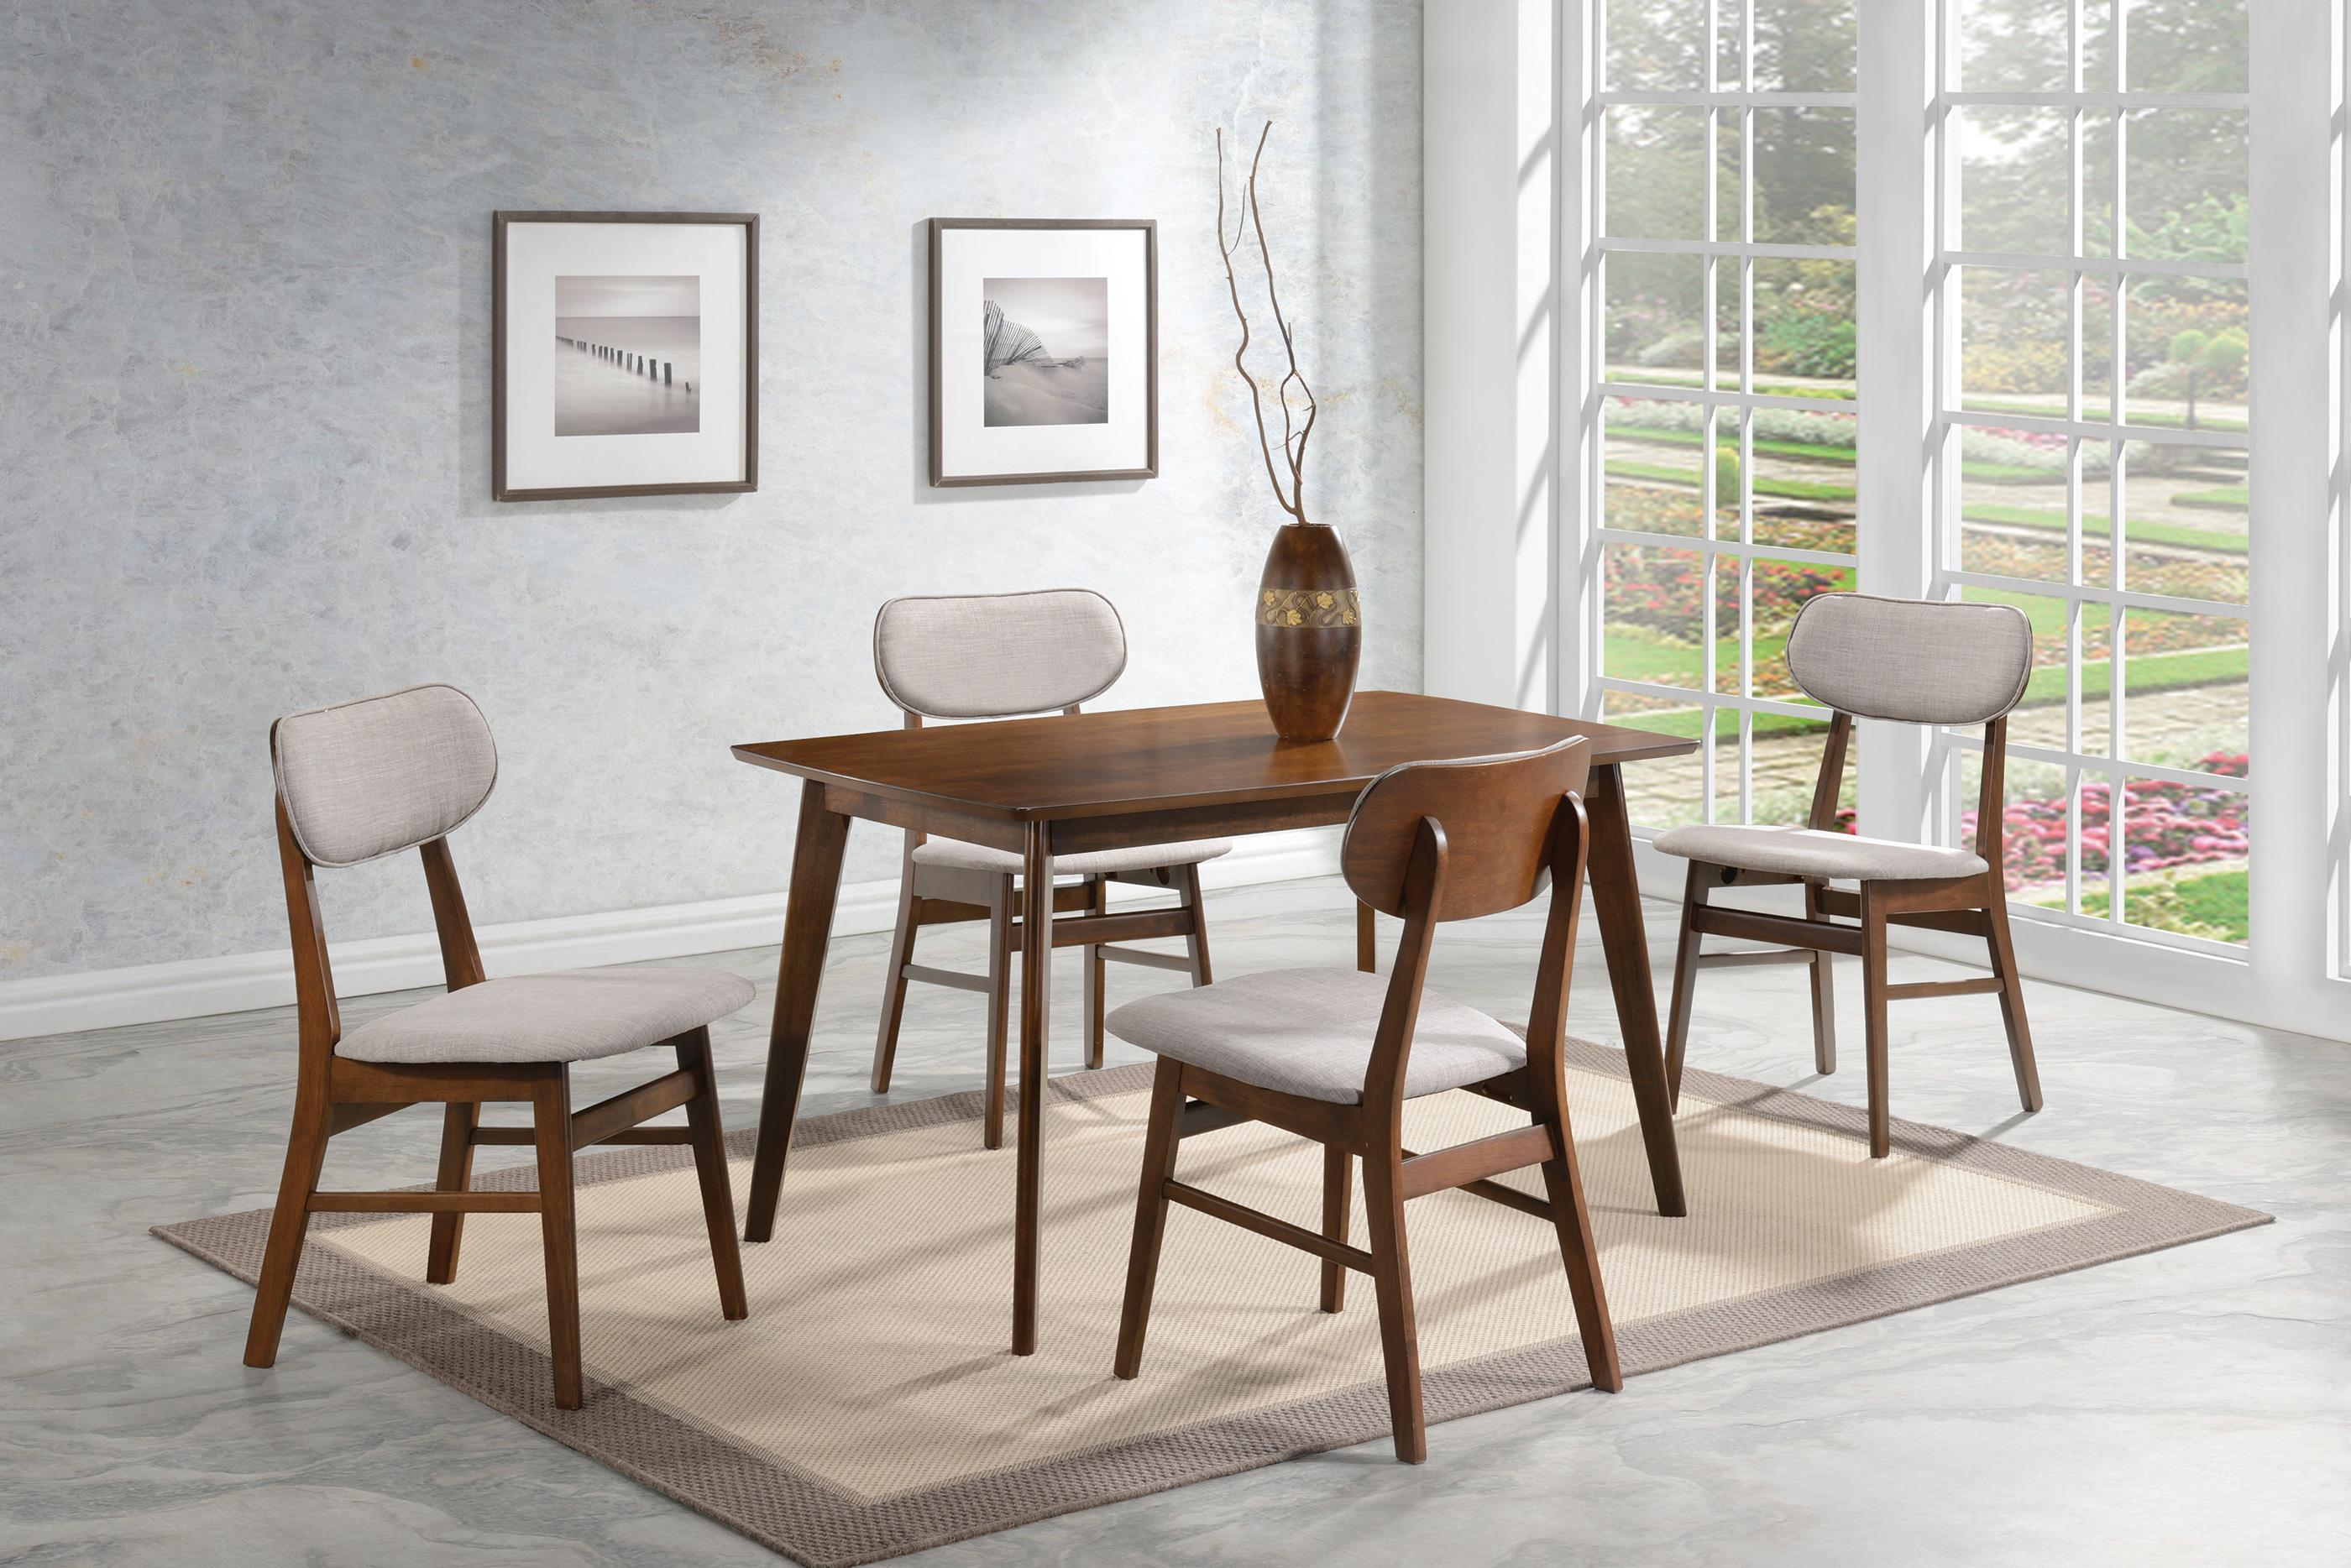 & Coaster Kersey Dining Table with Angled Legs - Coaster Fine Furniture